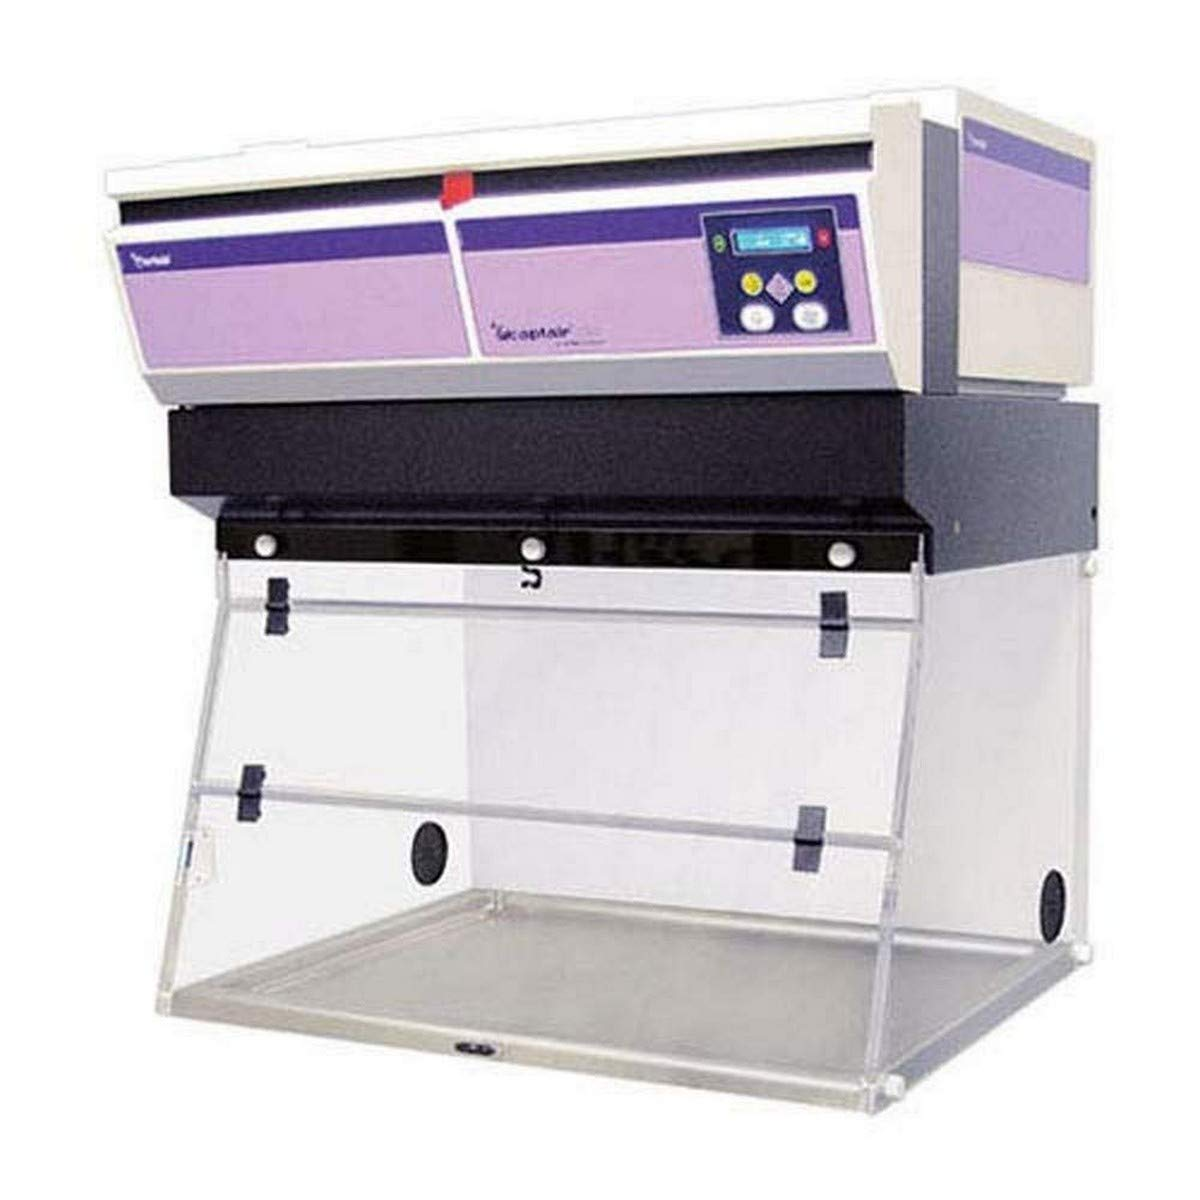 Biolab FICB 32107 Captair BIO - Campana de laboratorio (protección UV, ancho 825 mm): Amazon.es: Industria, empresas y ciencia